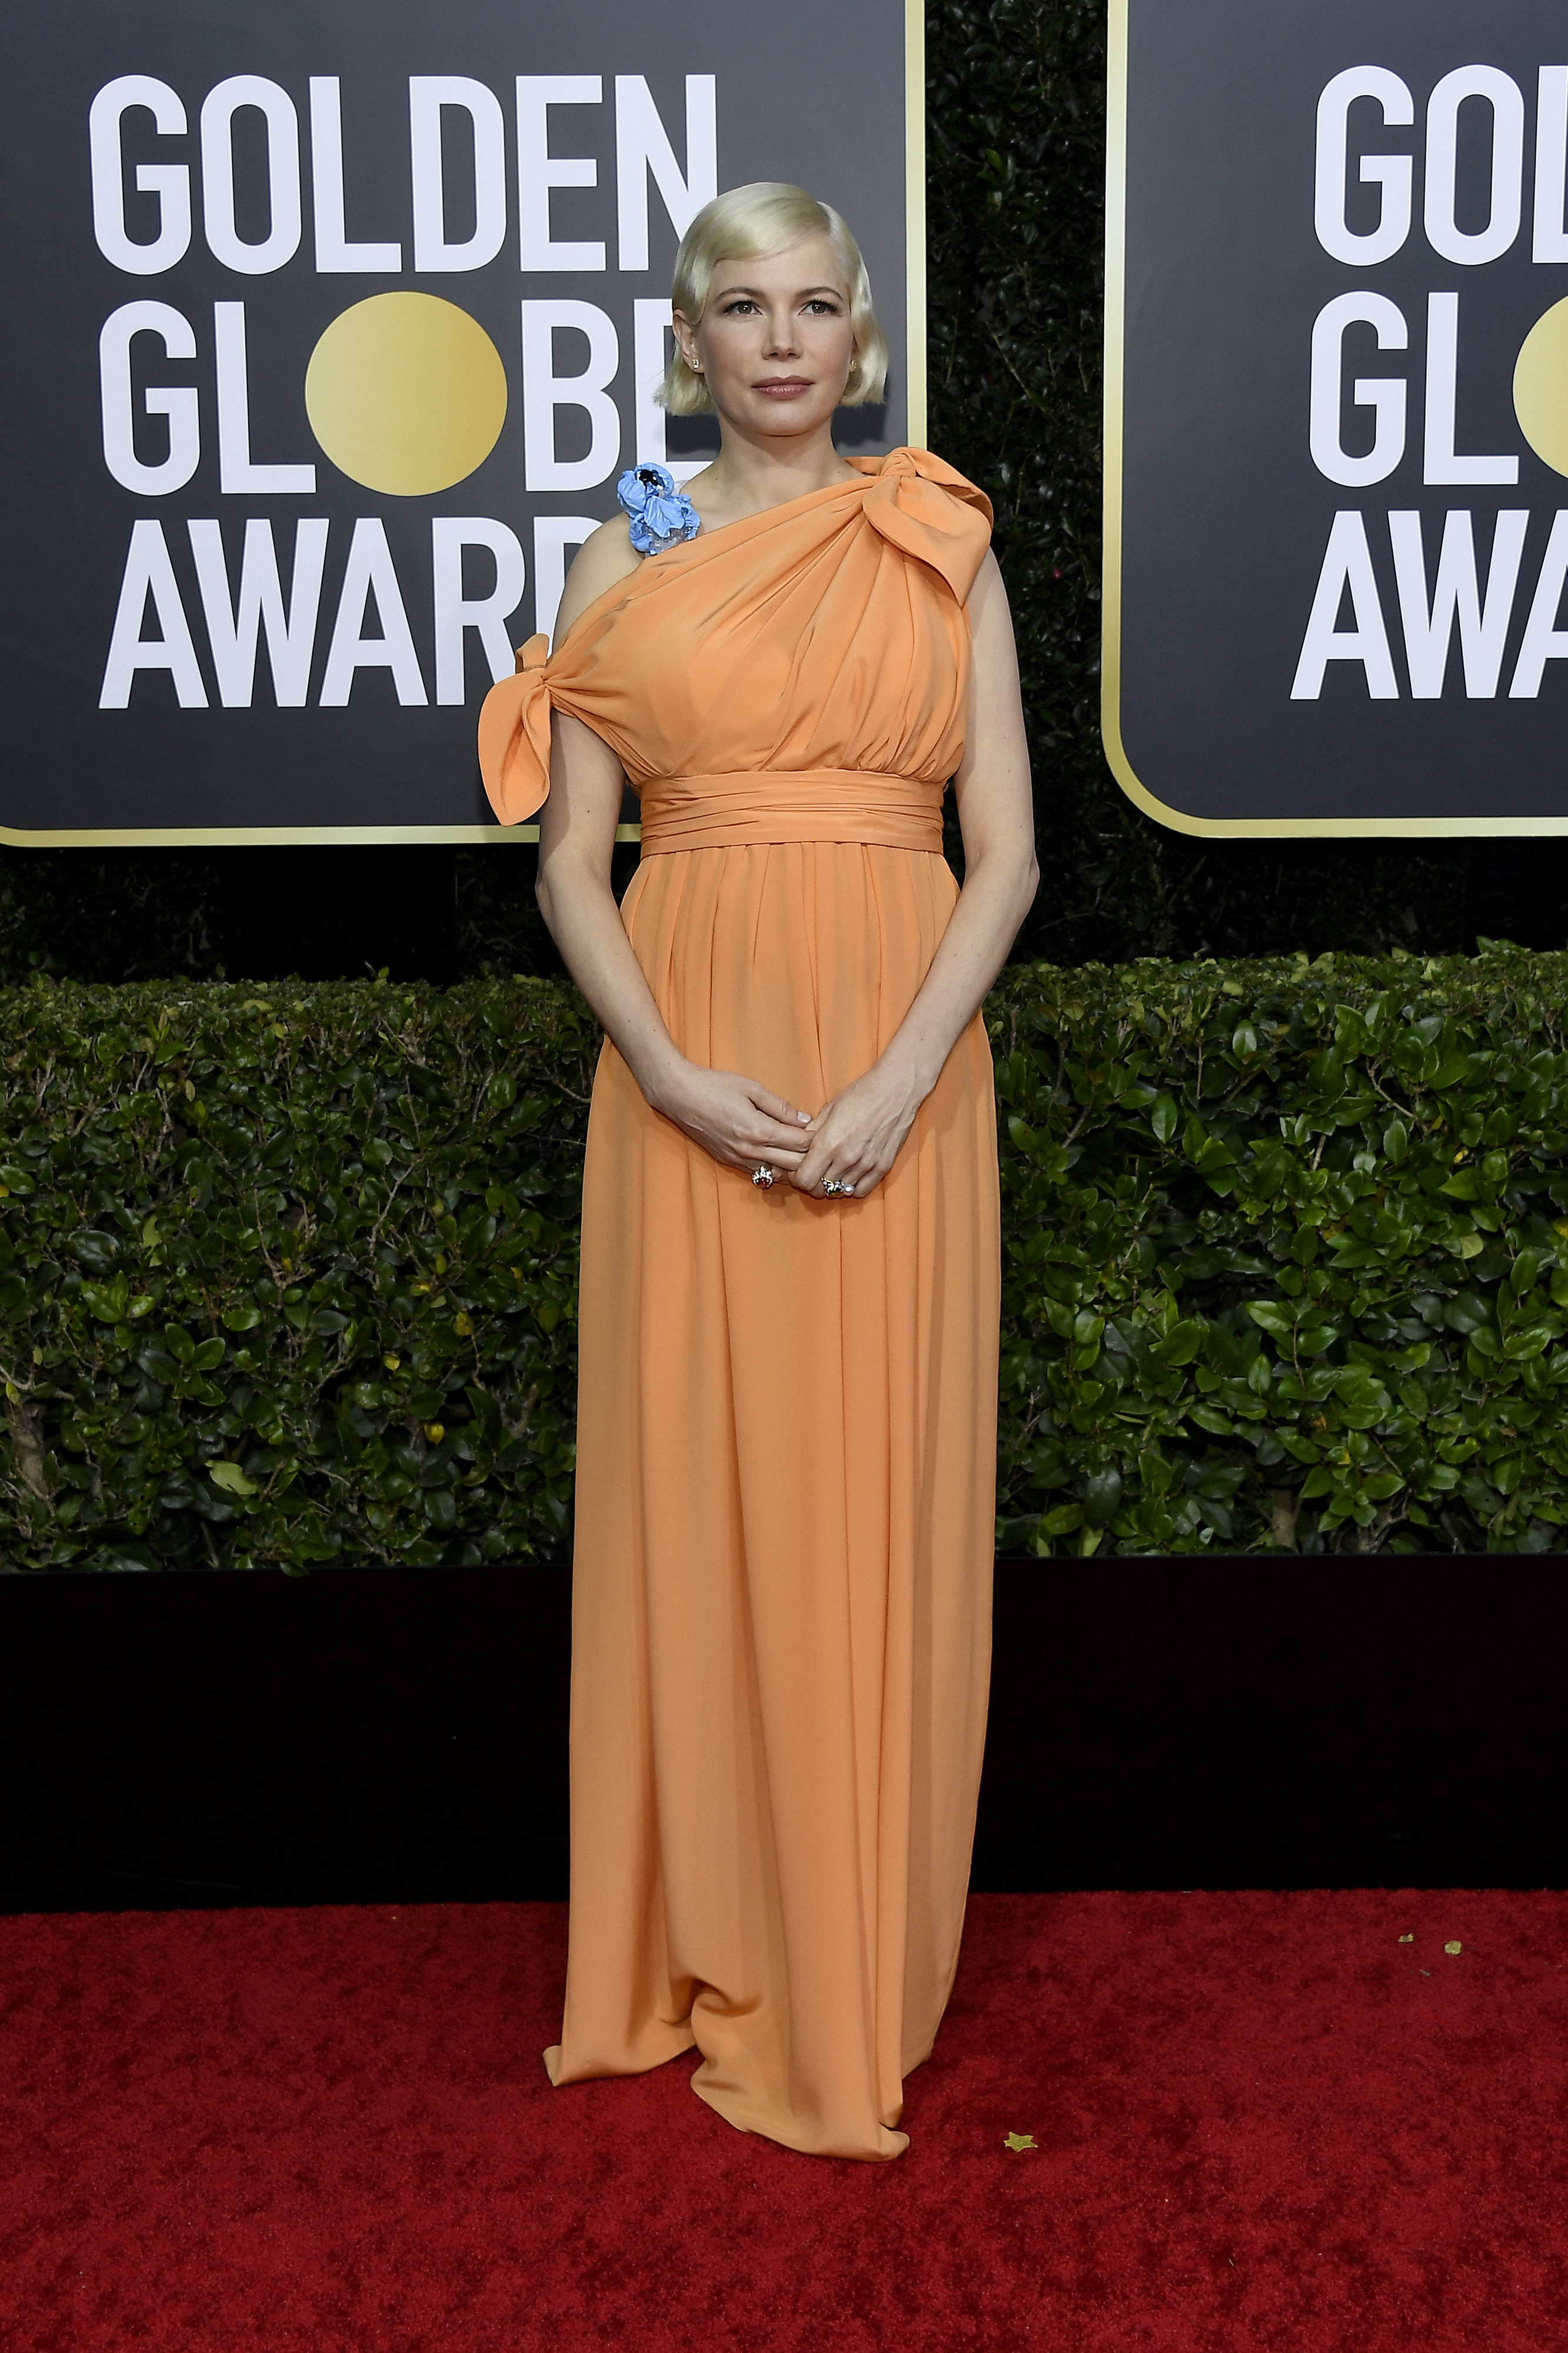 BEVERLY HILLS, CALIFORNIA - JANUARY 05: 77th ANNUAL GOLDEN GLOBE AWARDS -- Pictured: Michelle Williams arrives to the 77th Annual Golden Globe Awards held at the Beverly Hilton Hotel on January 5, 2020. -- (Photo by: Kevork Djansezian/NBC/NBCU Photo Bank via Getty Images)